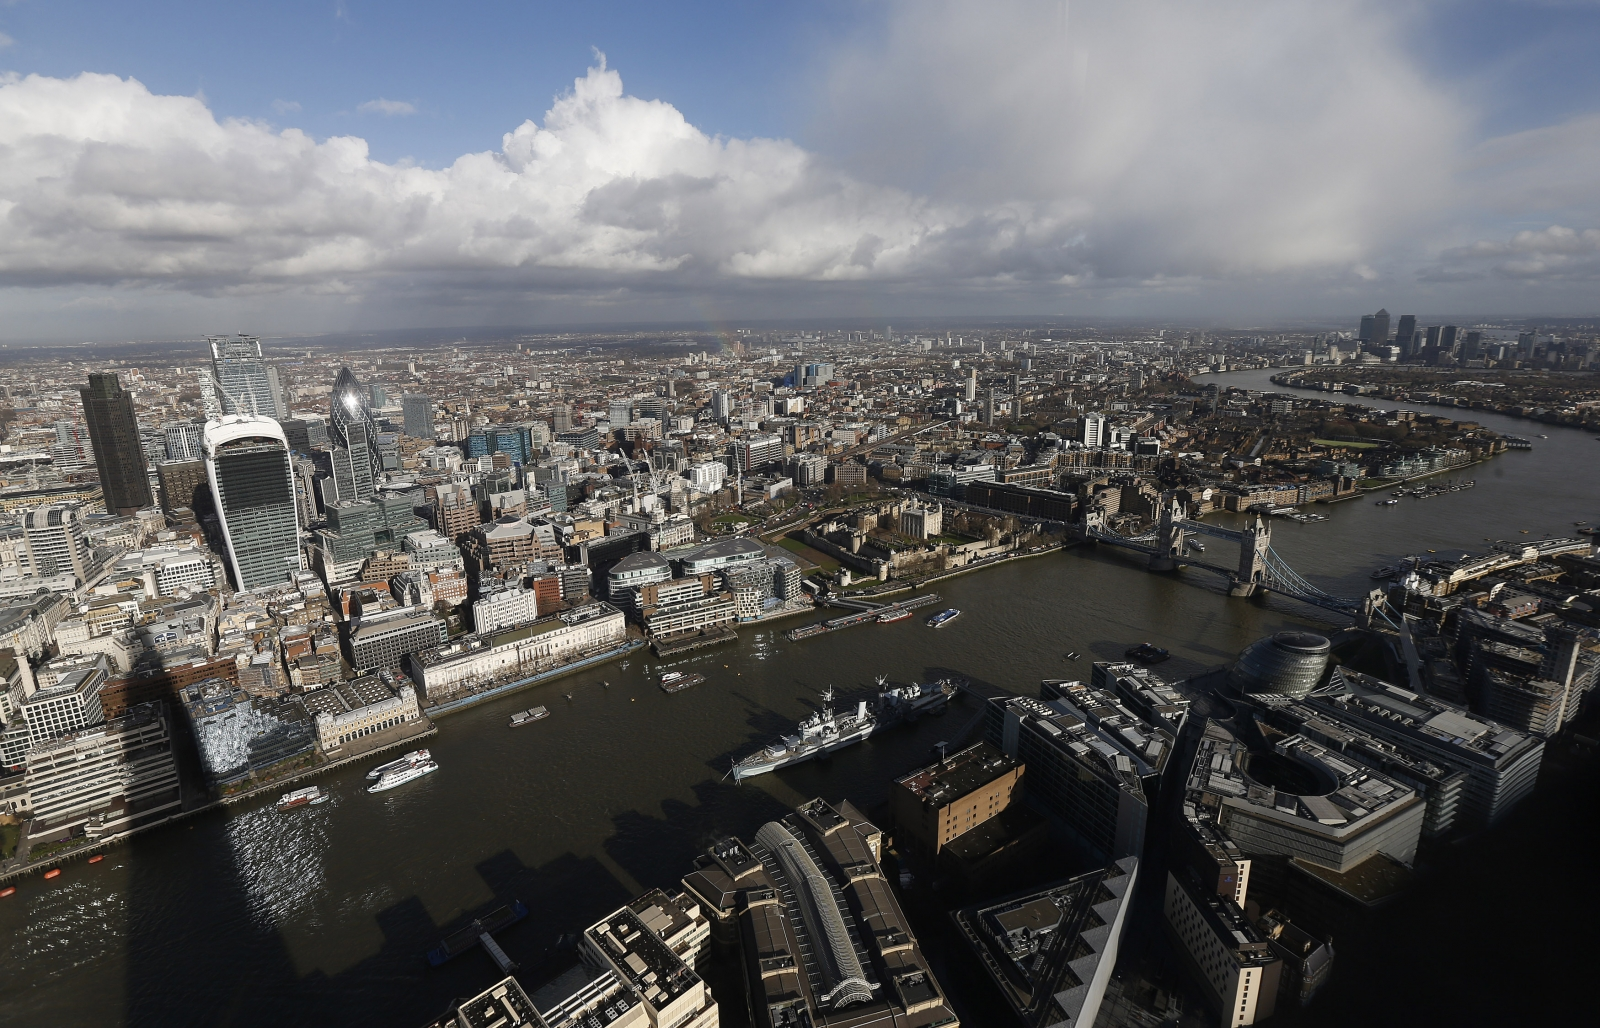 The CBI said financial firms were experiencing a bounce in profits and hiring was up